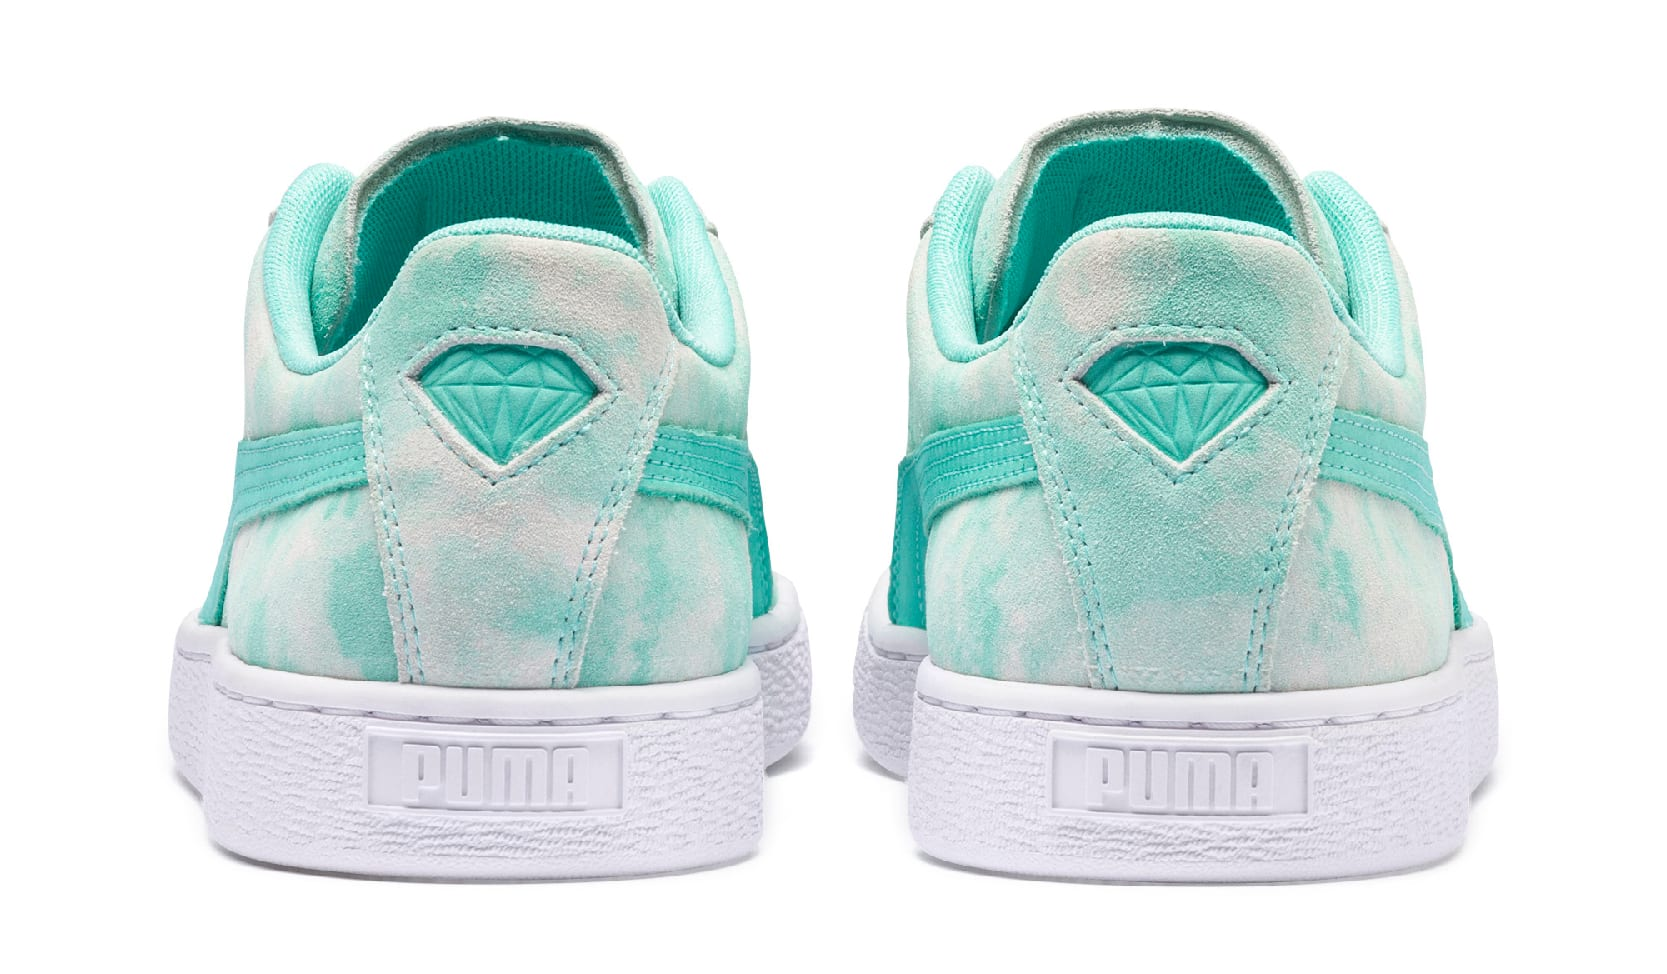 pretty nice c201c 4336f Diamond Supply Co. x Puma Spring/Summer 2019 Collection ...